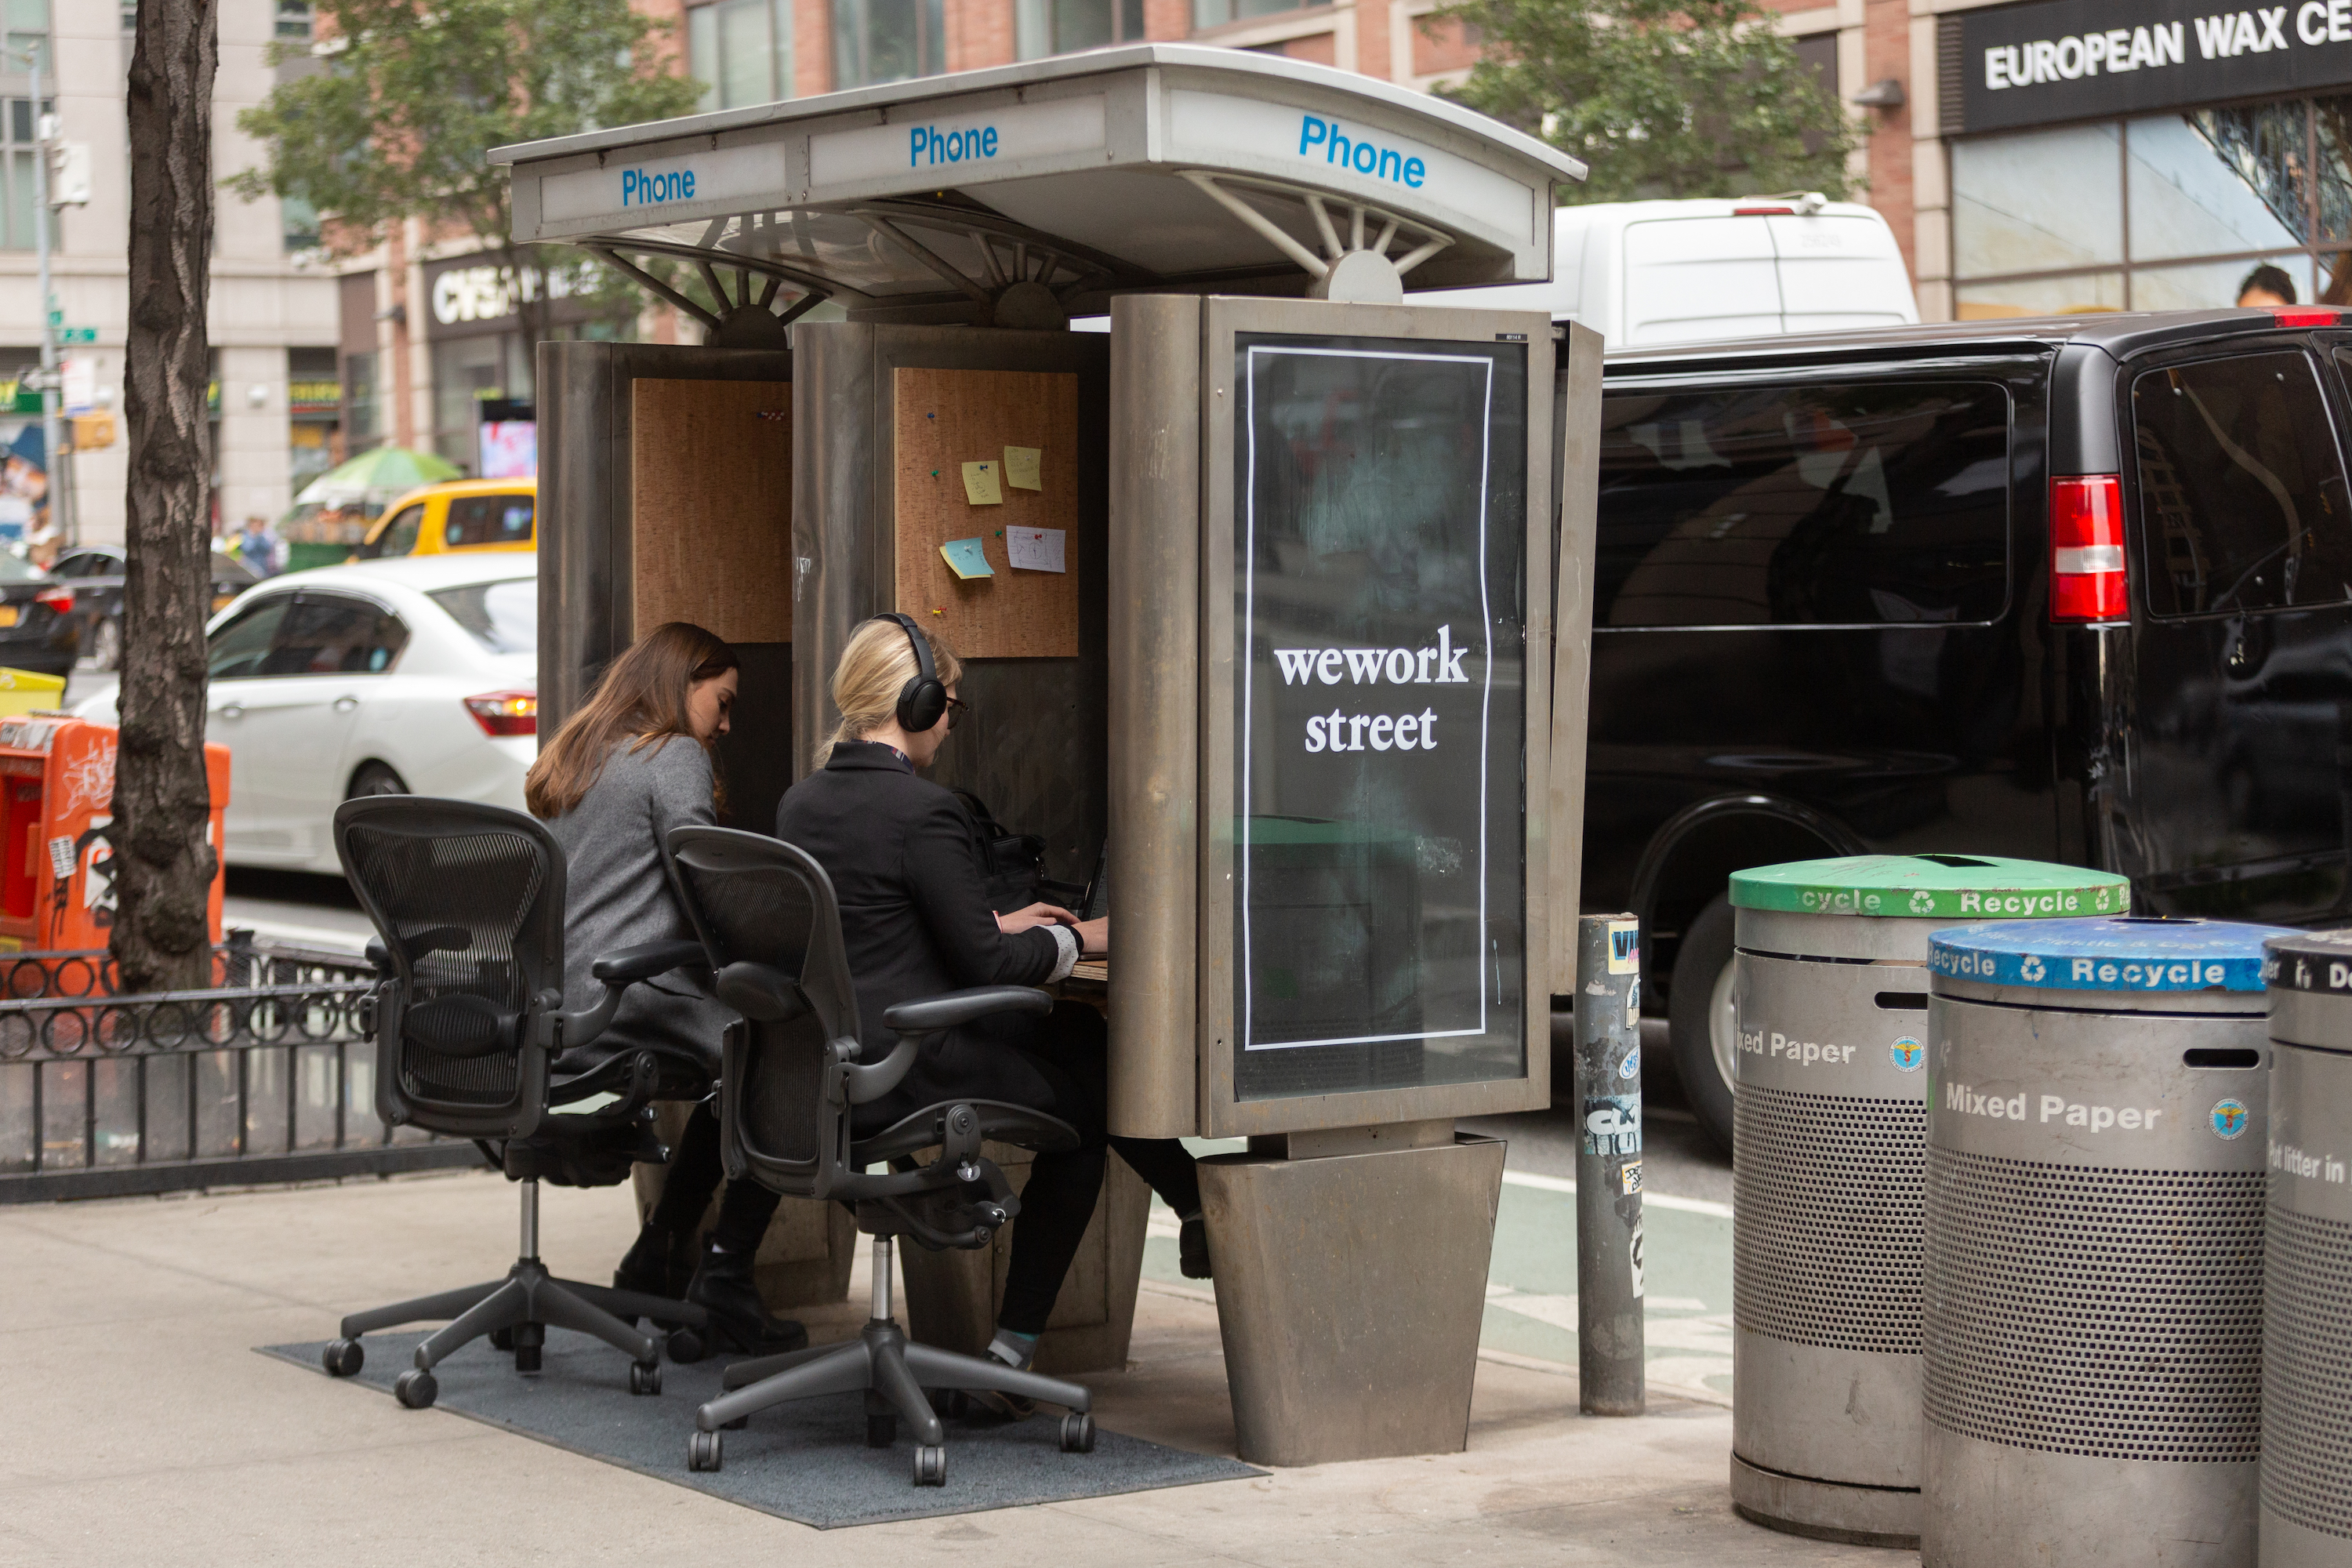 Phone booths in NYC turned into co-working spaces by prankster group